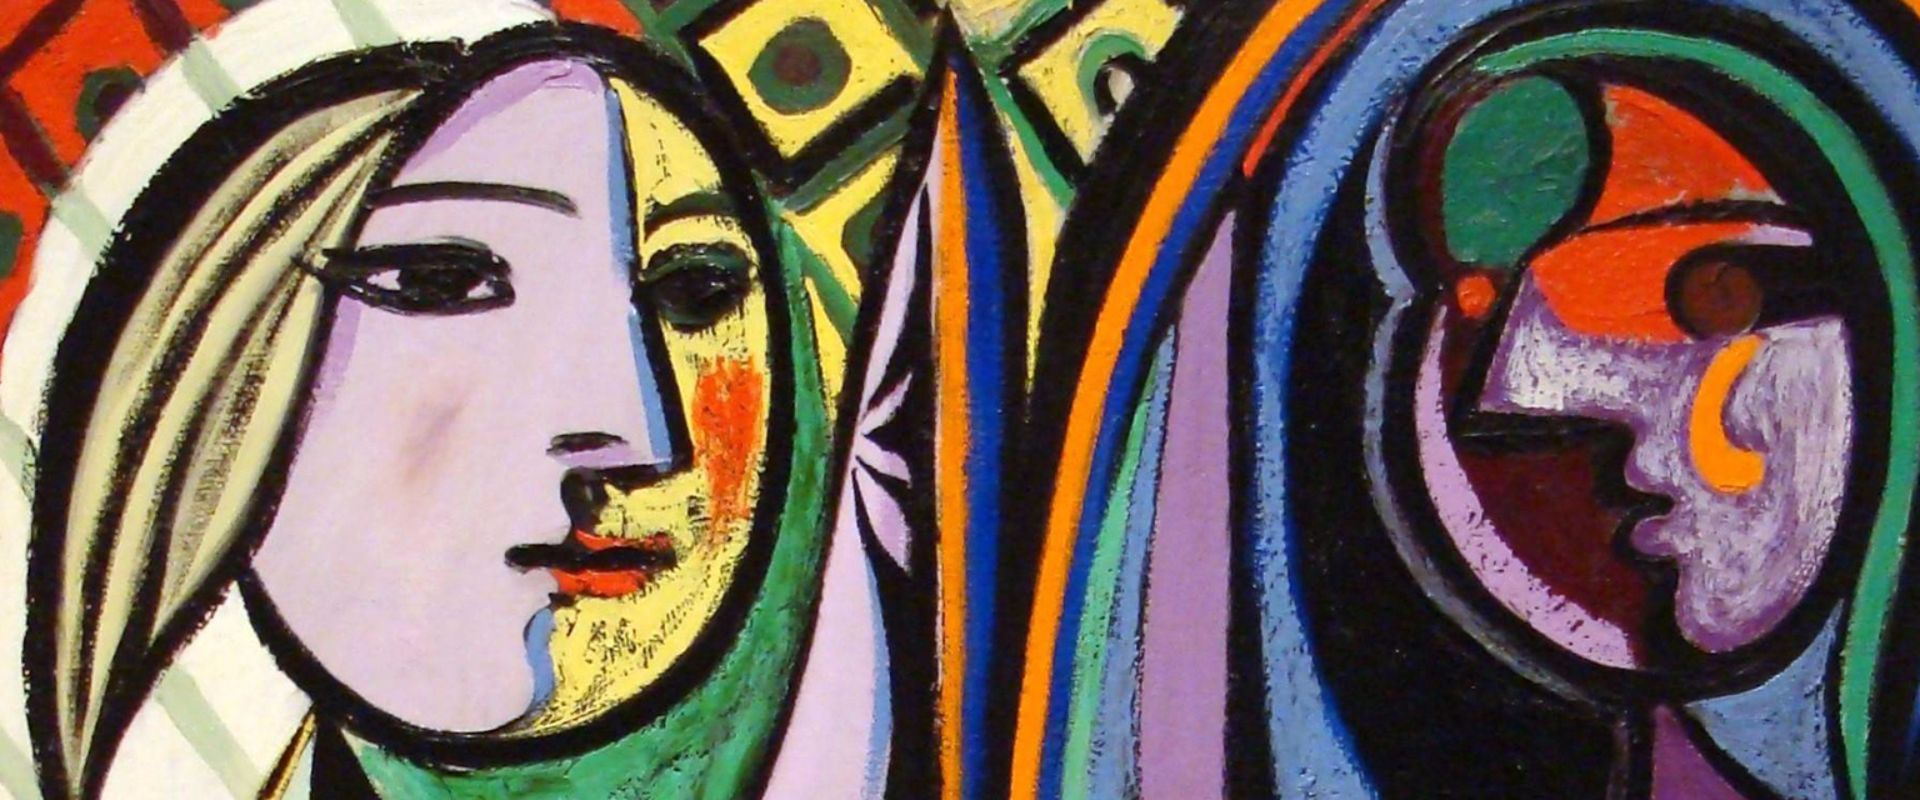 Pablo picasso paintings buy posters frames canvas digital art large size prints of the